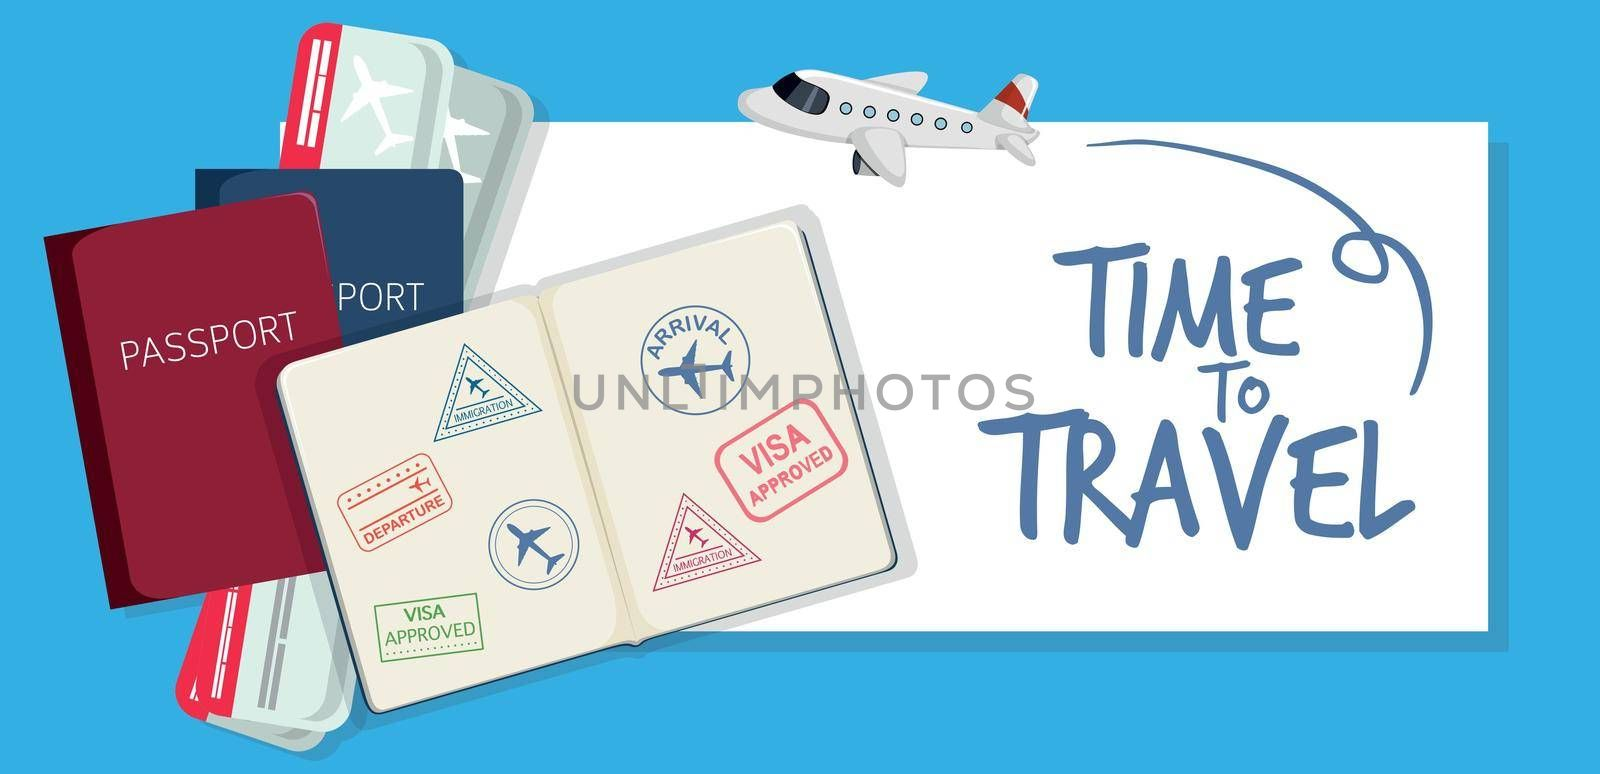 A time to travel icon illustration